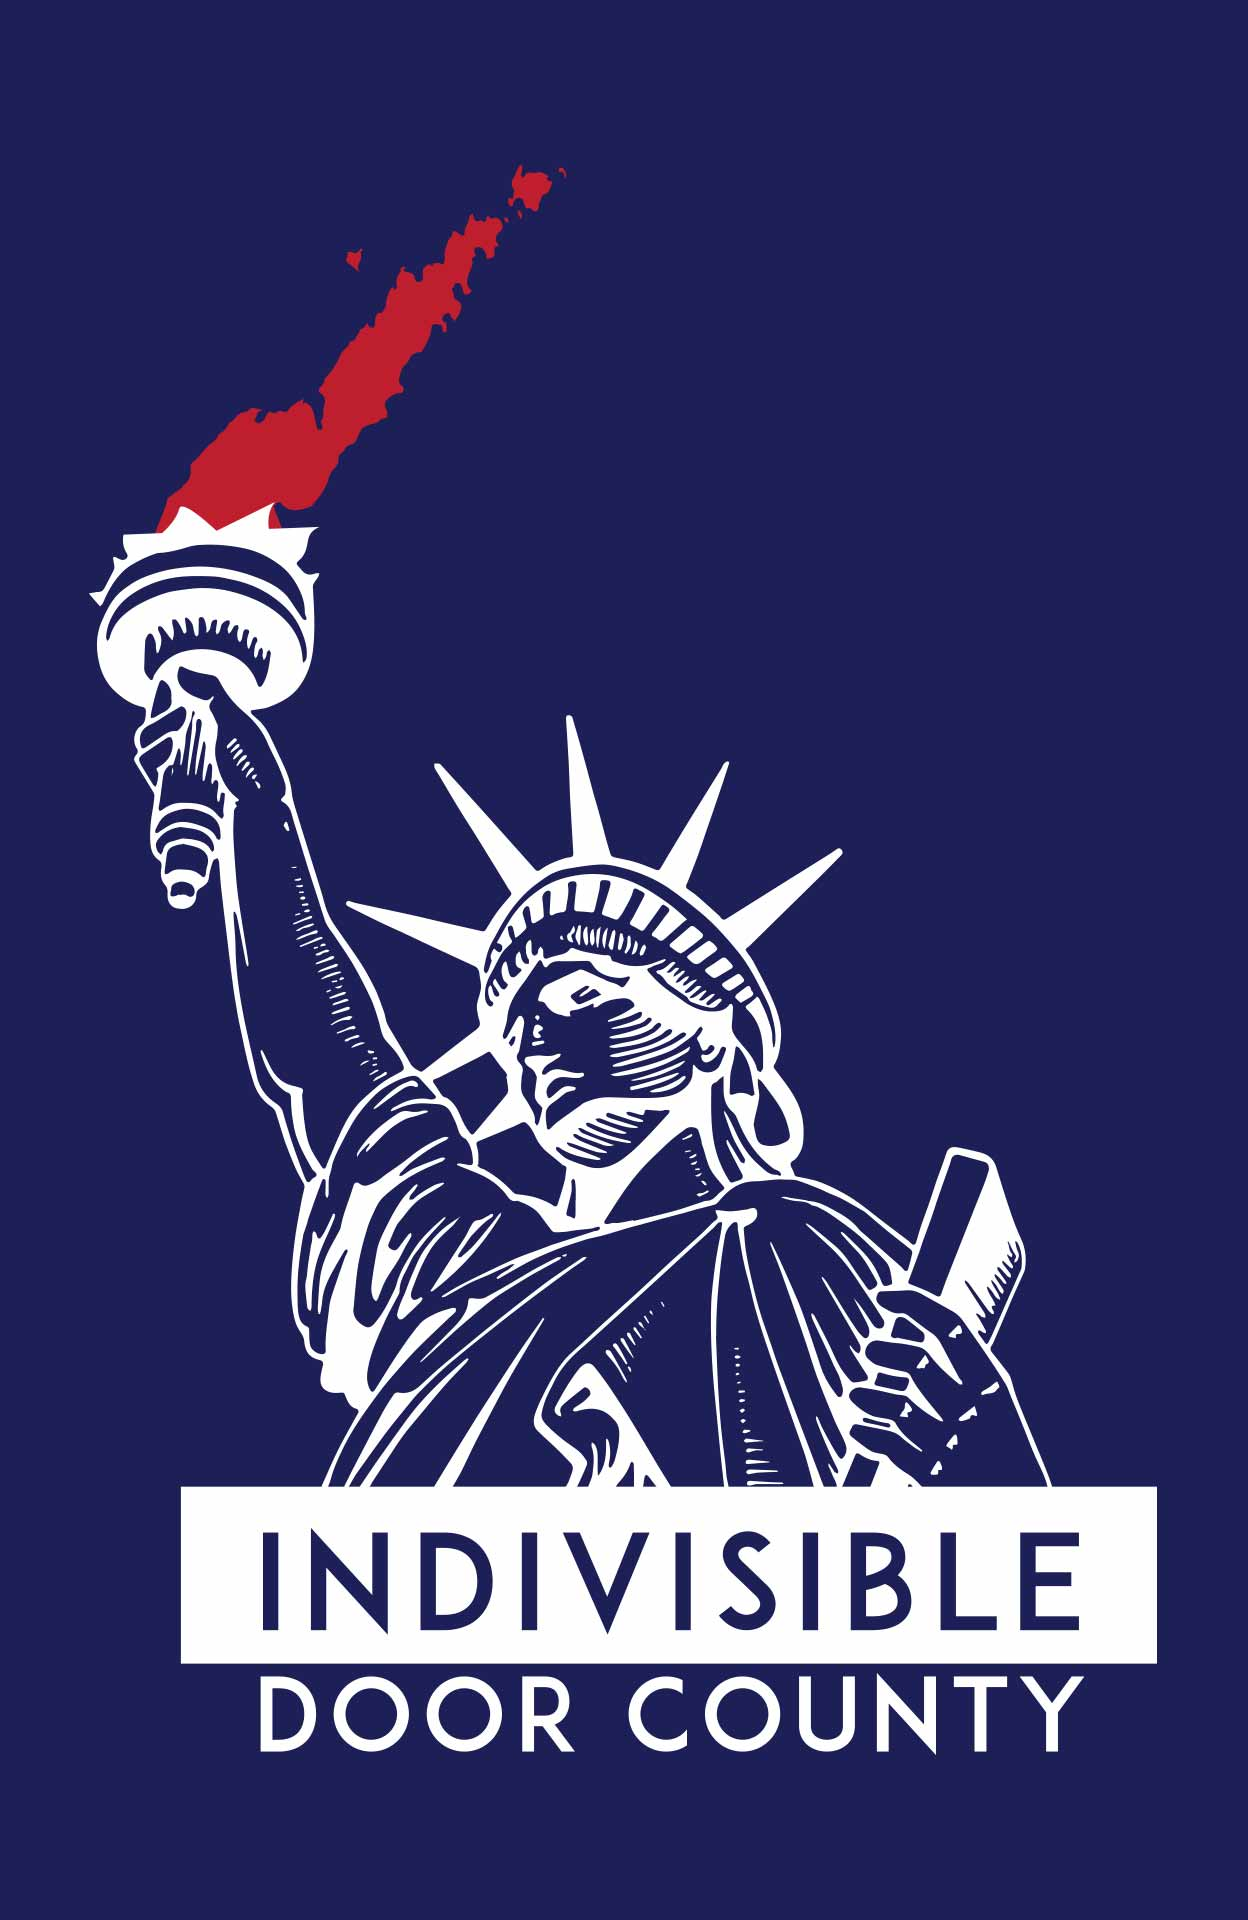 Indivisible-Door-County-TShirt